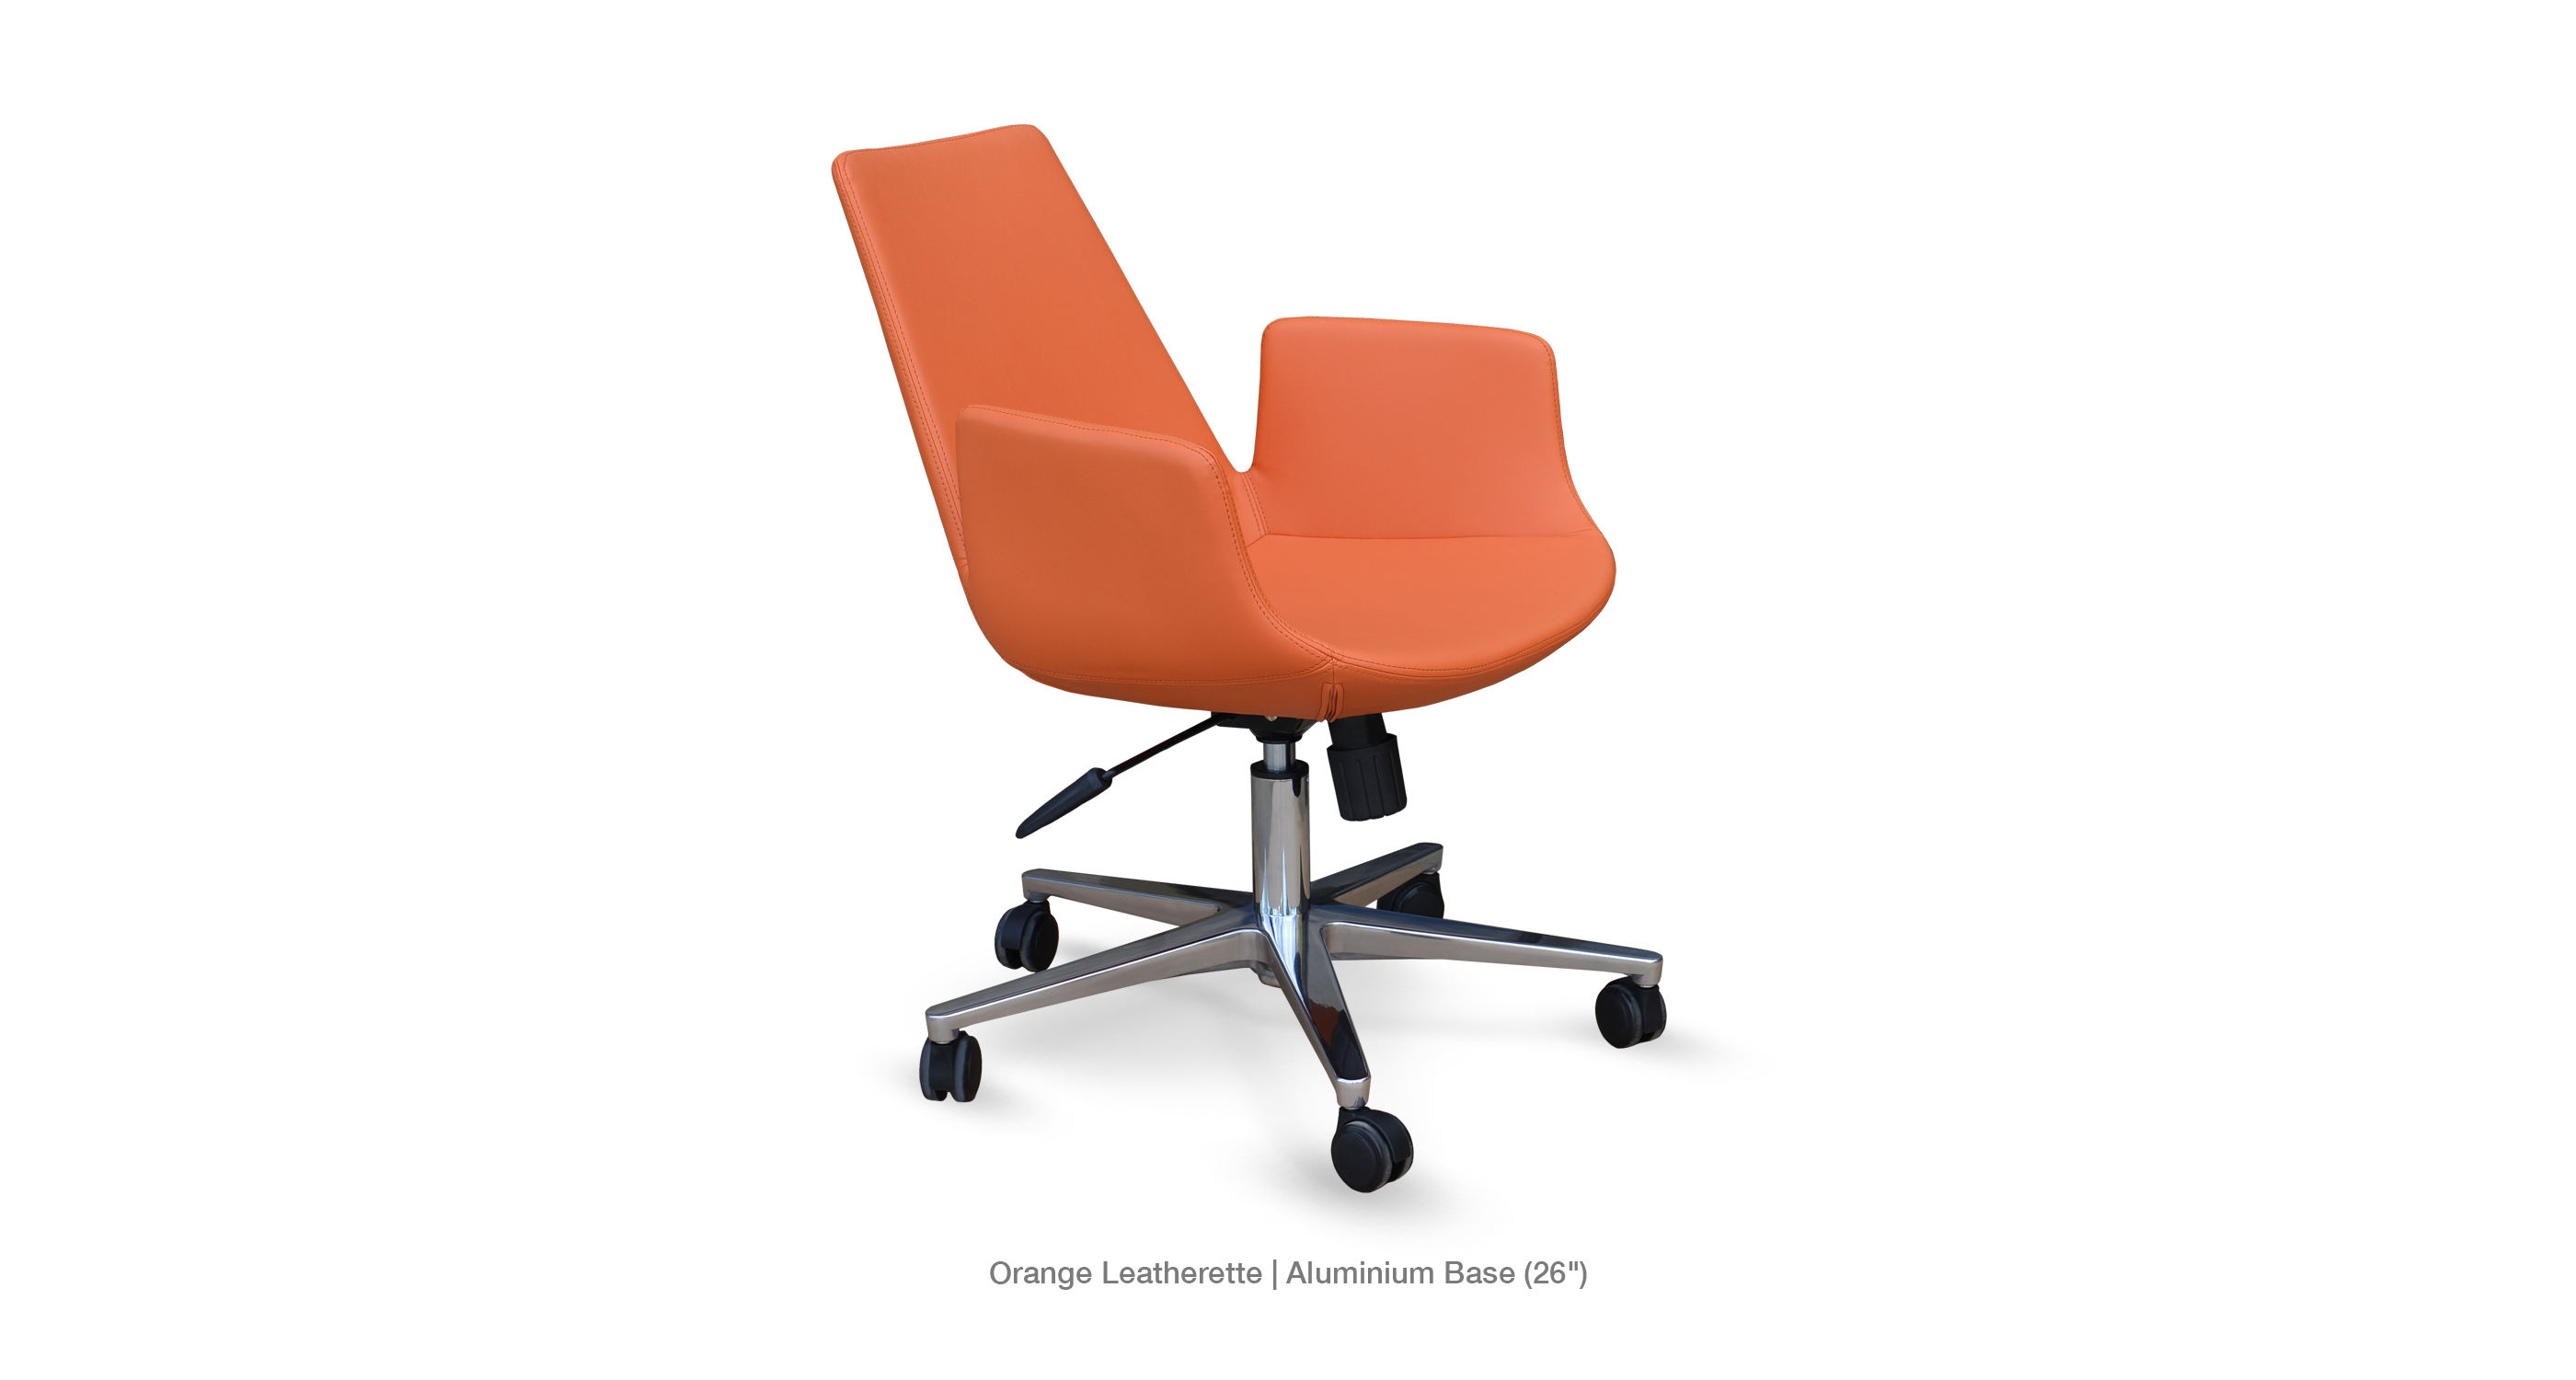 Eiffel Arm Office Orange